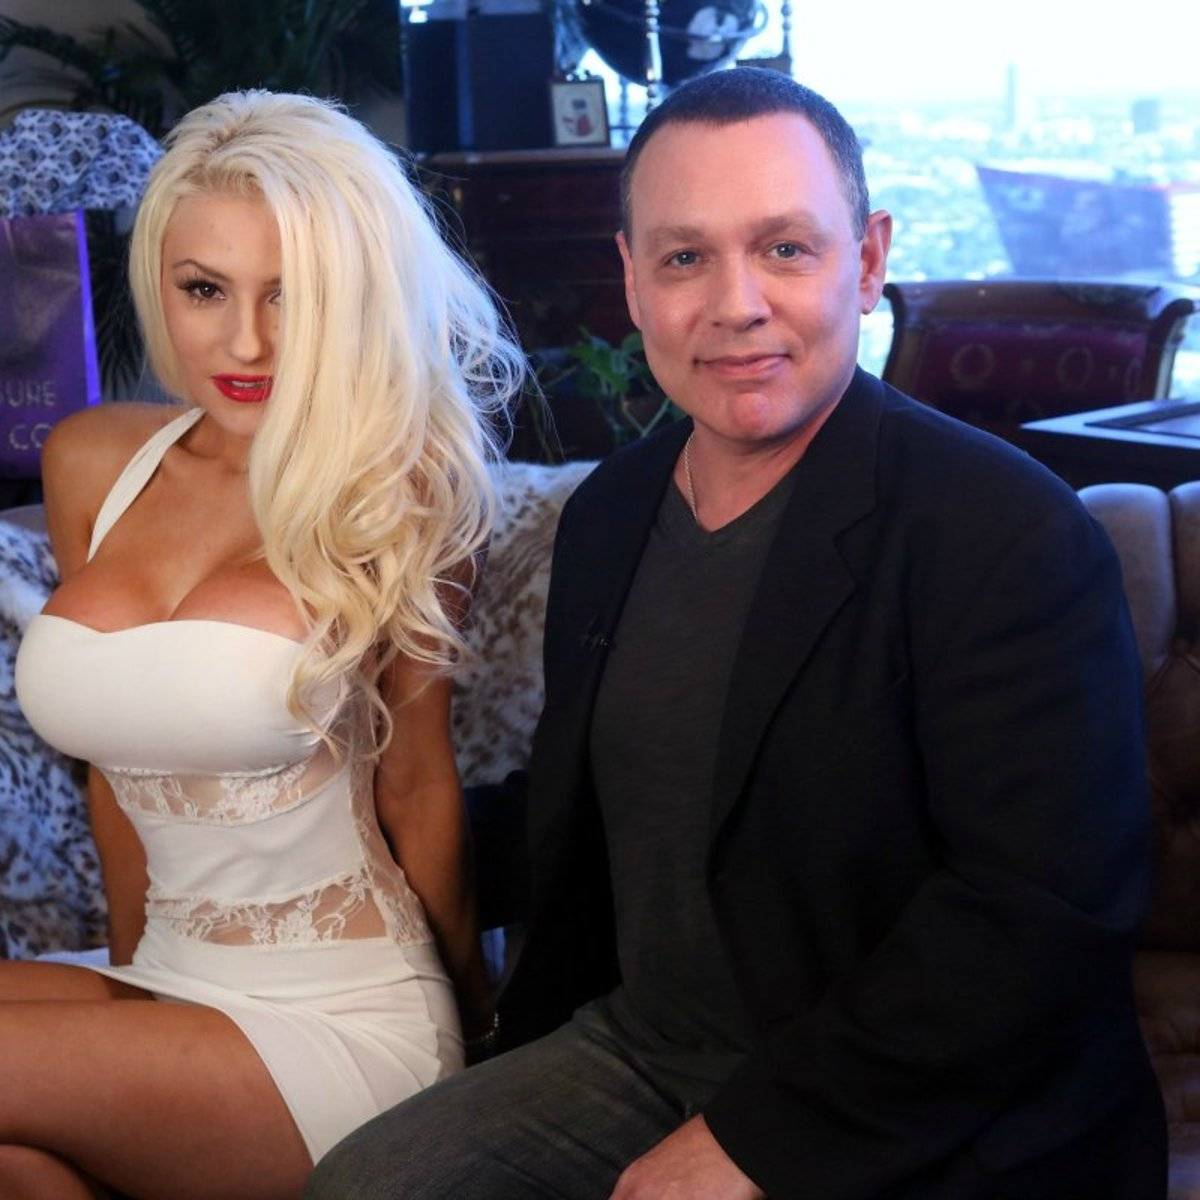 Courtney Stodden On Her Marriage To Doug Hutchison